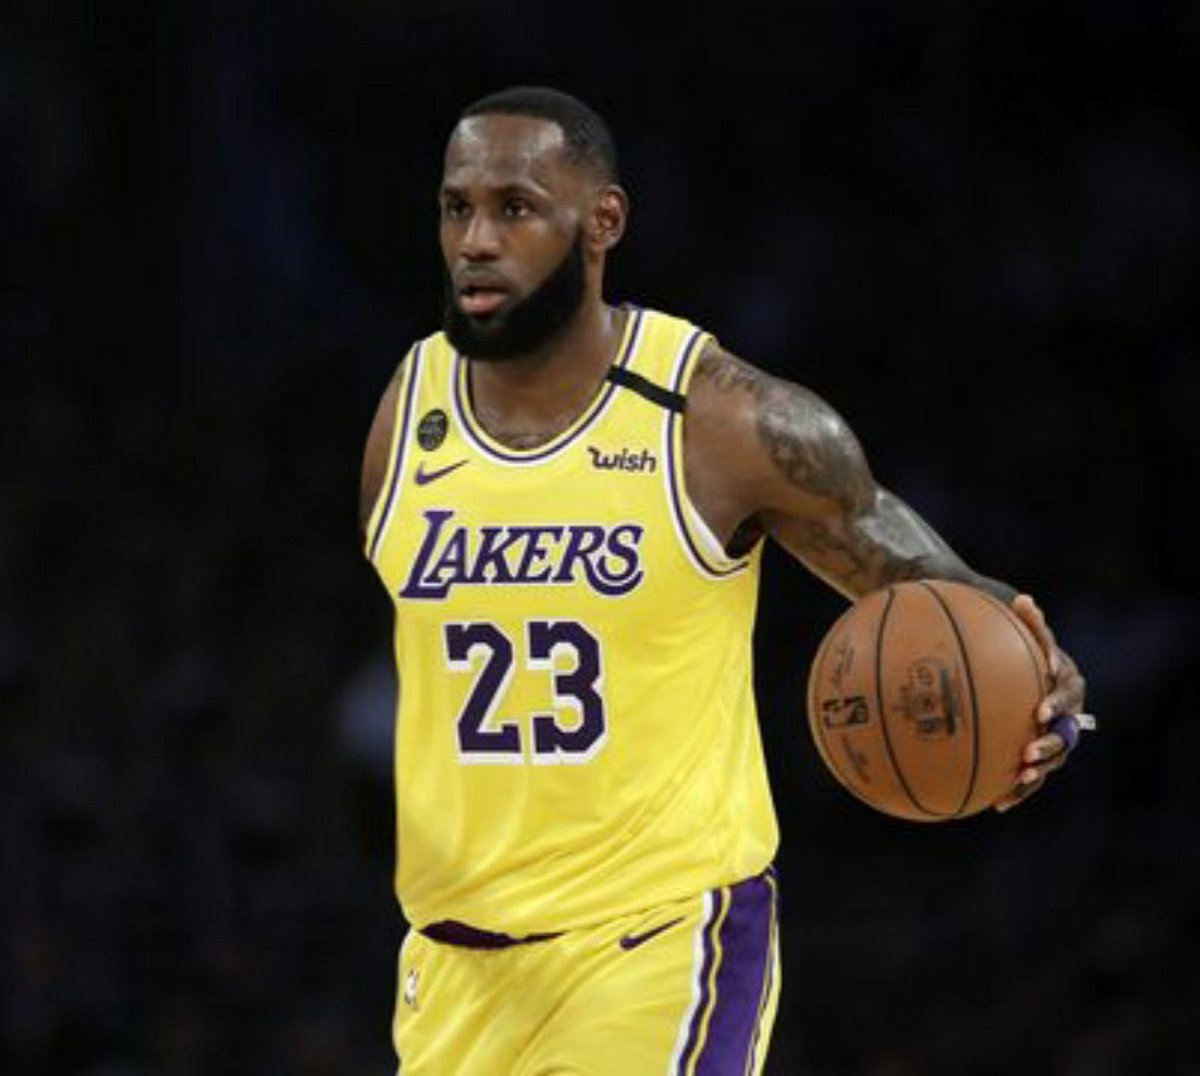 Would #LeBronJames still be an All-Star level player if he had one arm? #NBATwitter  Thoughts? https://t.co/lnQHOOUtmy